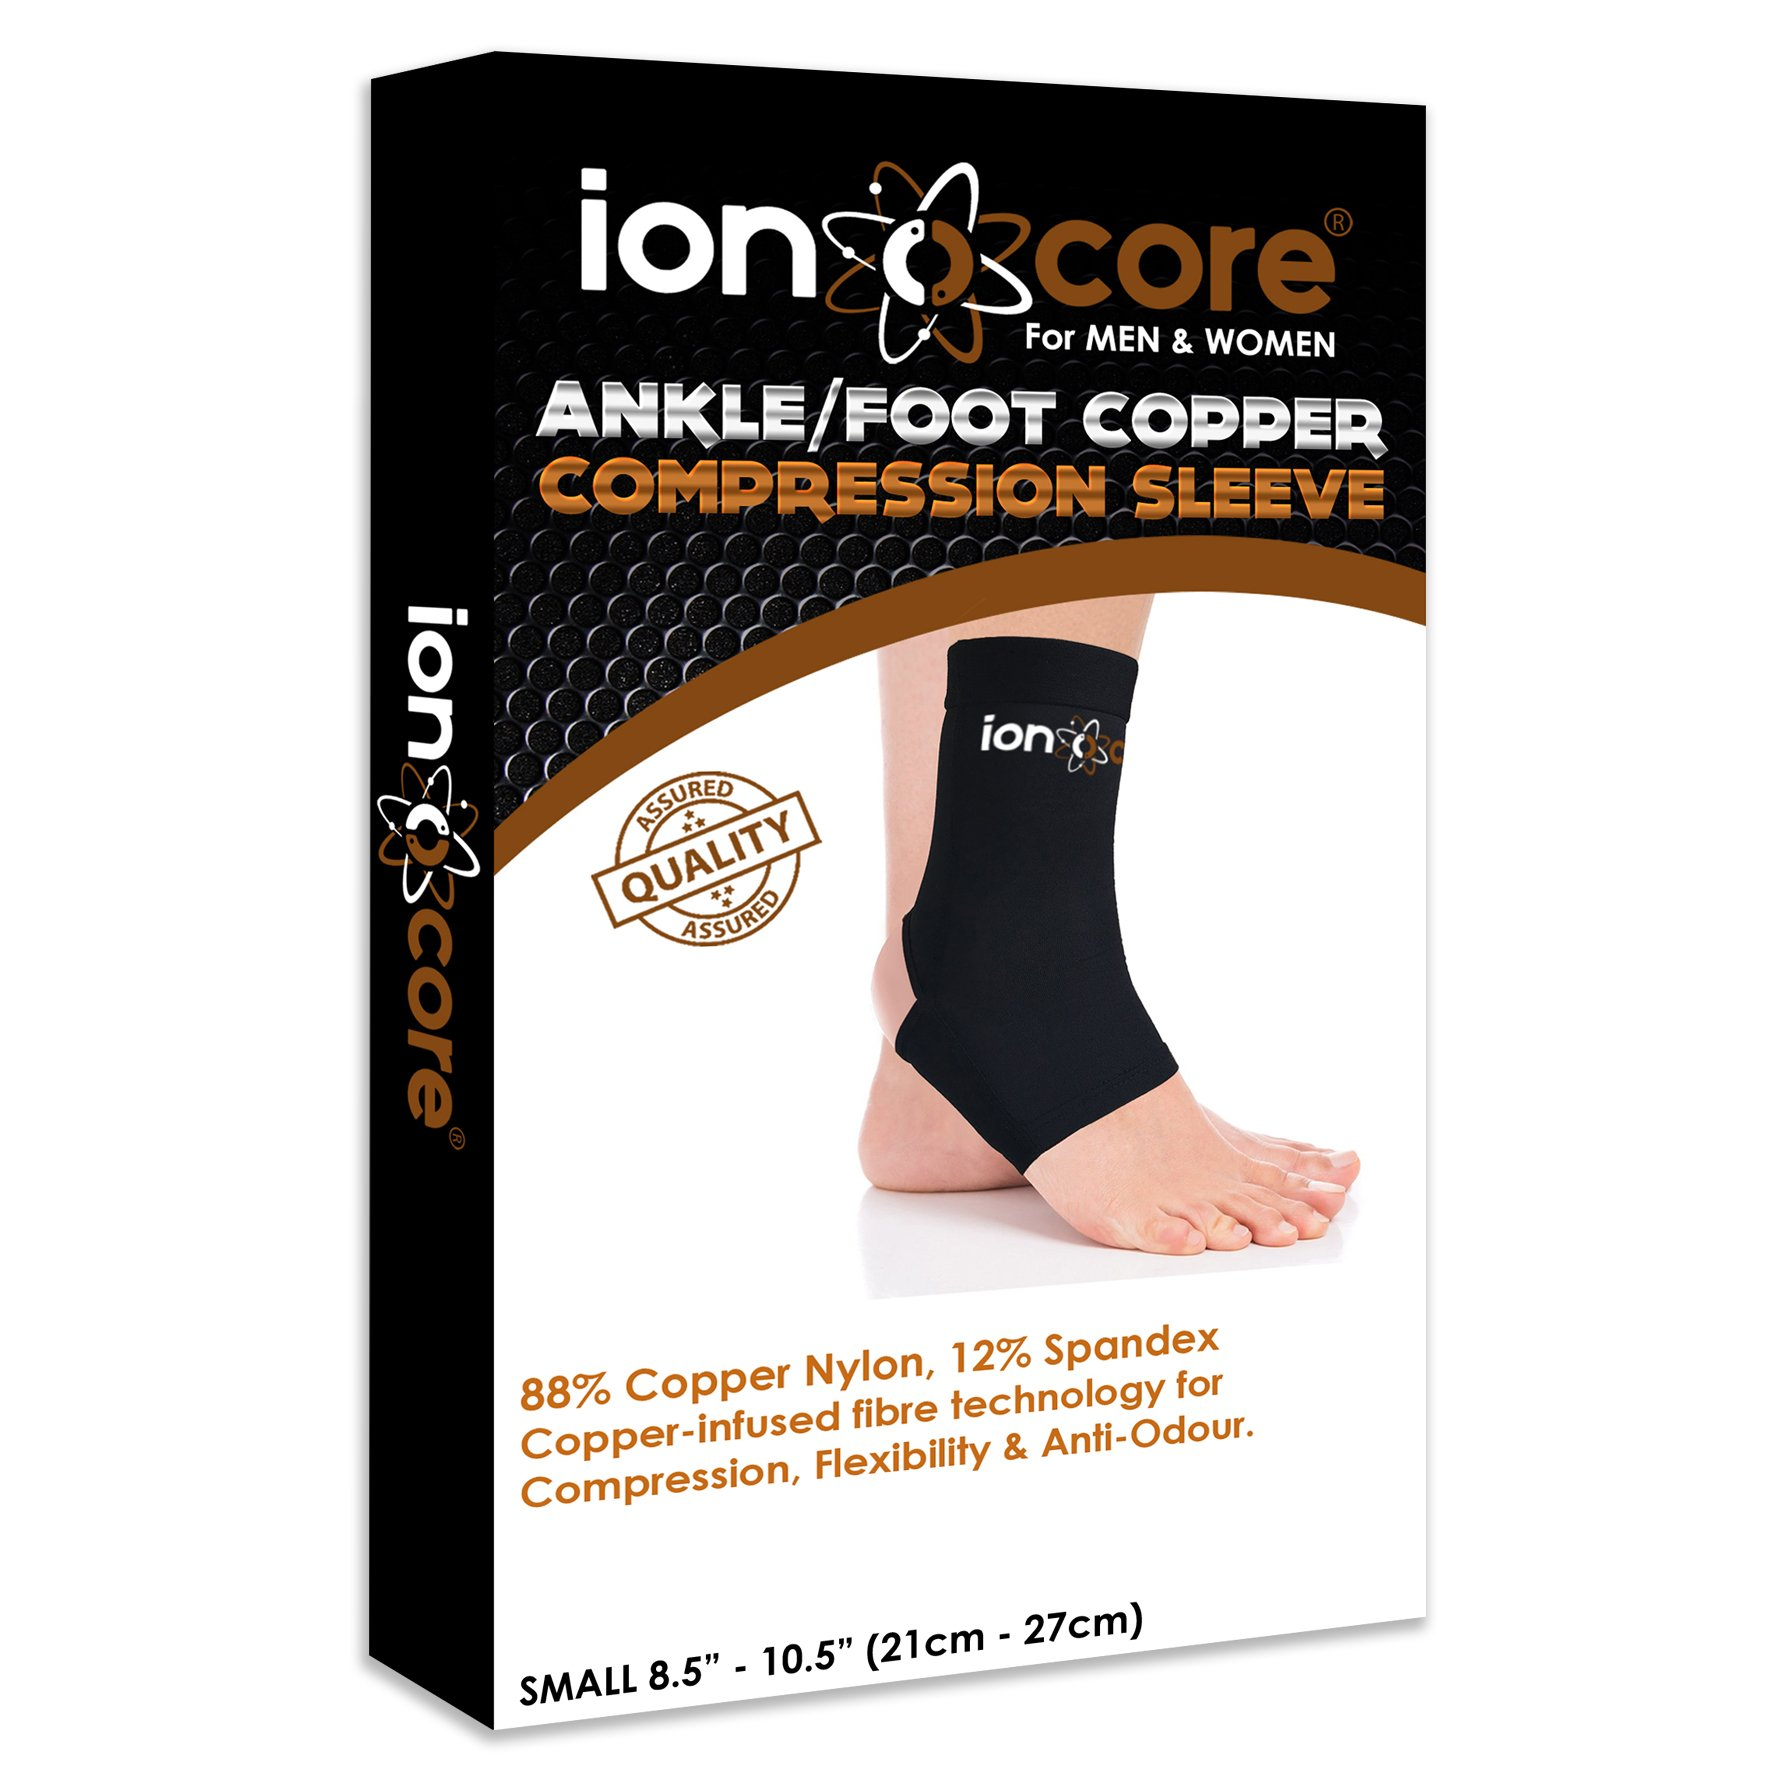 Copper compression ankle support sleeve for ankle, foot and arch support from ionocore®. Relief of plantar fasciitis, ankle pain, Achilles tendon pain & foot pain with open heel. Slimfit. (Small) by ionocore